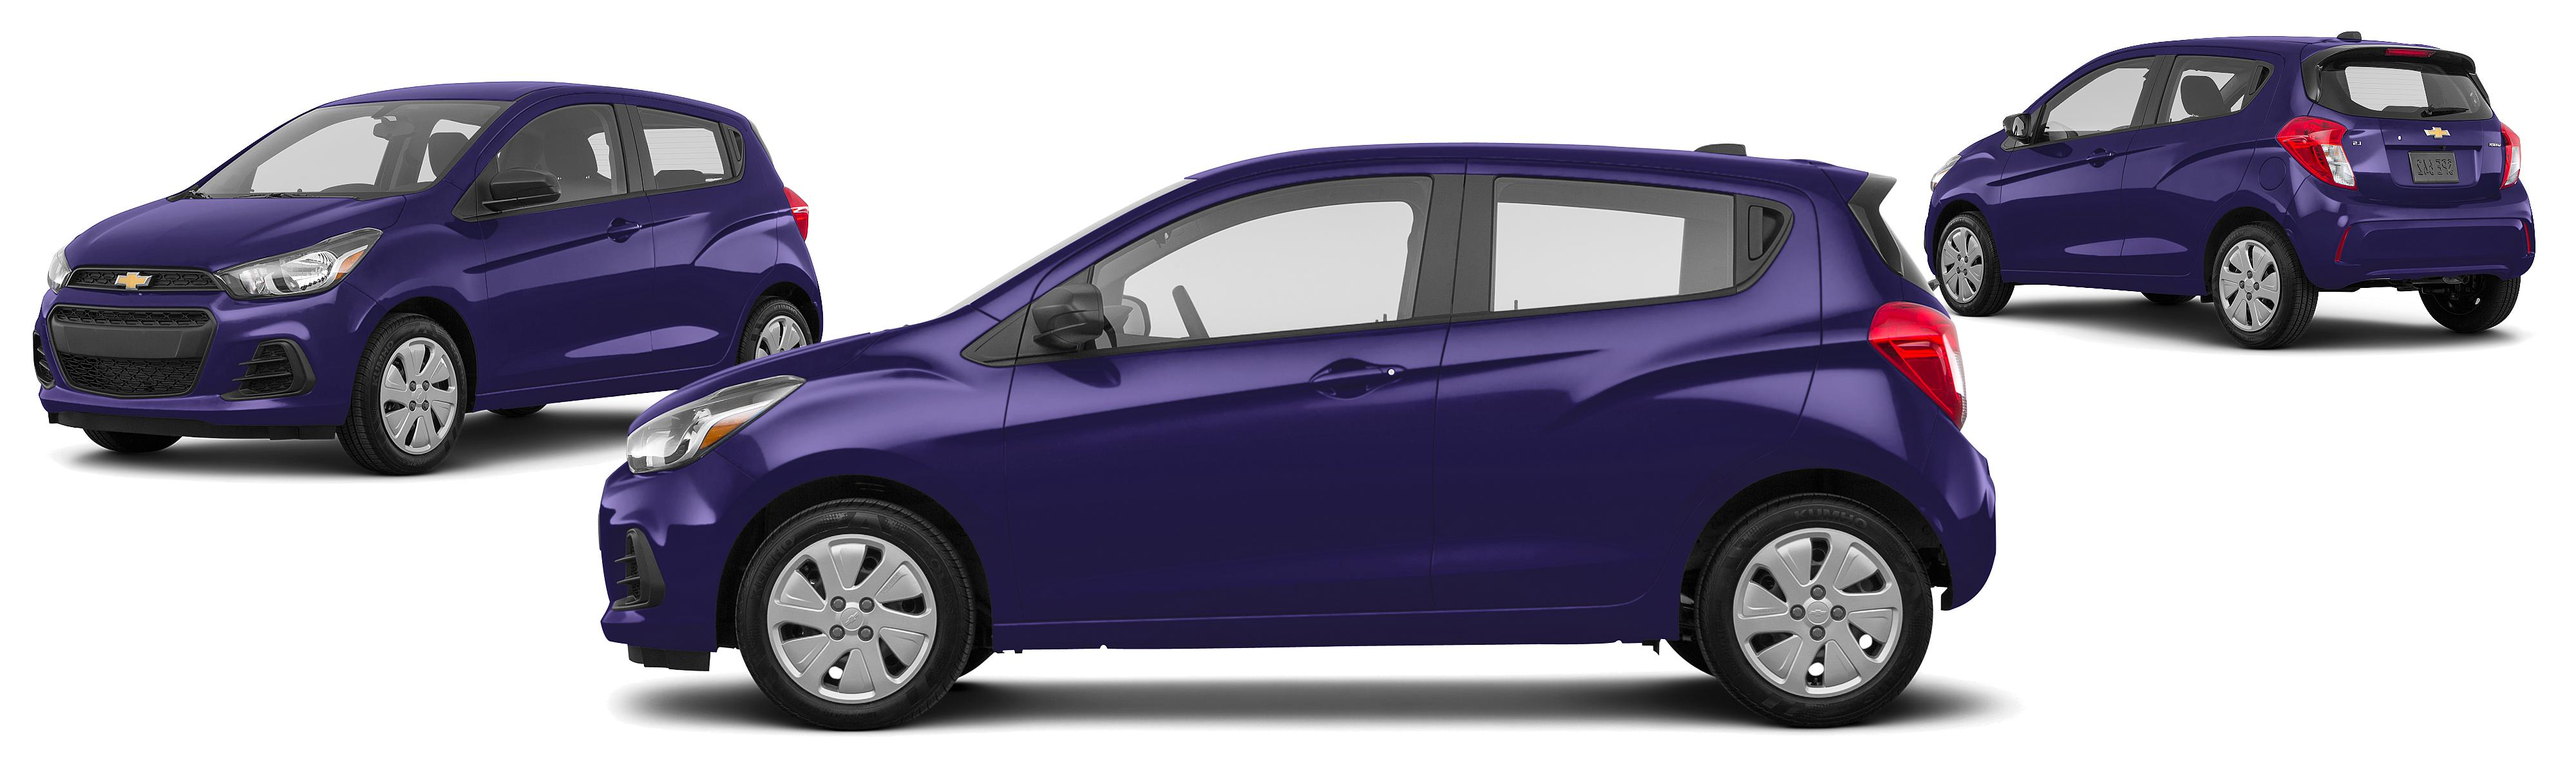 Purple Chevy Spark 2018 2019 New Car Reviews by